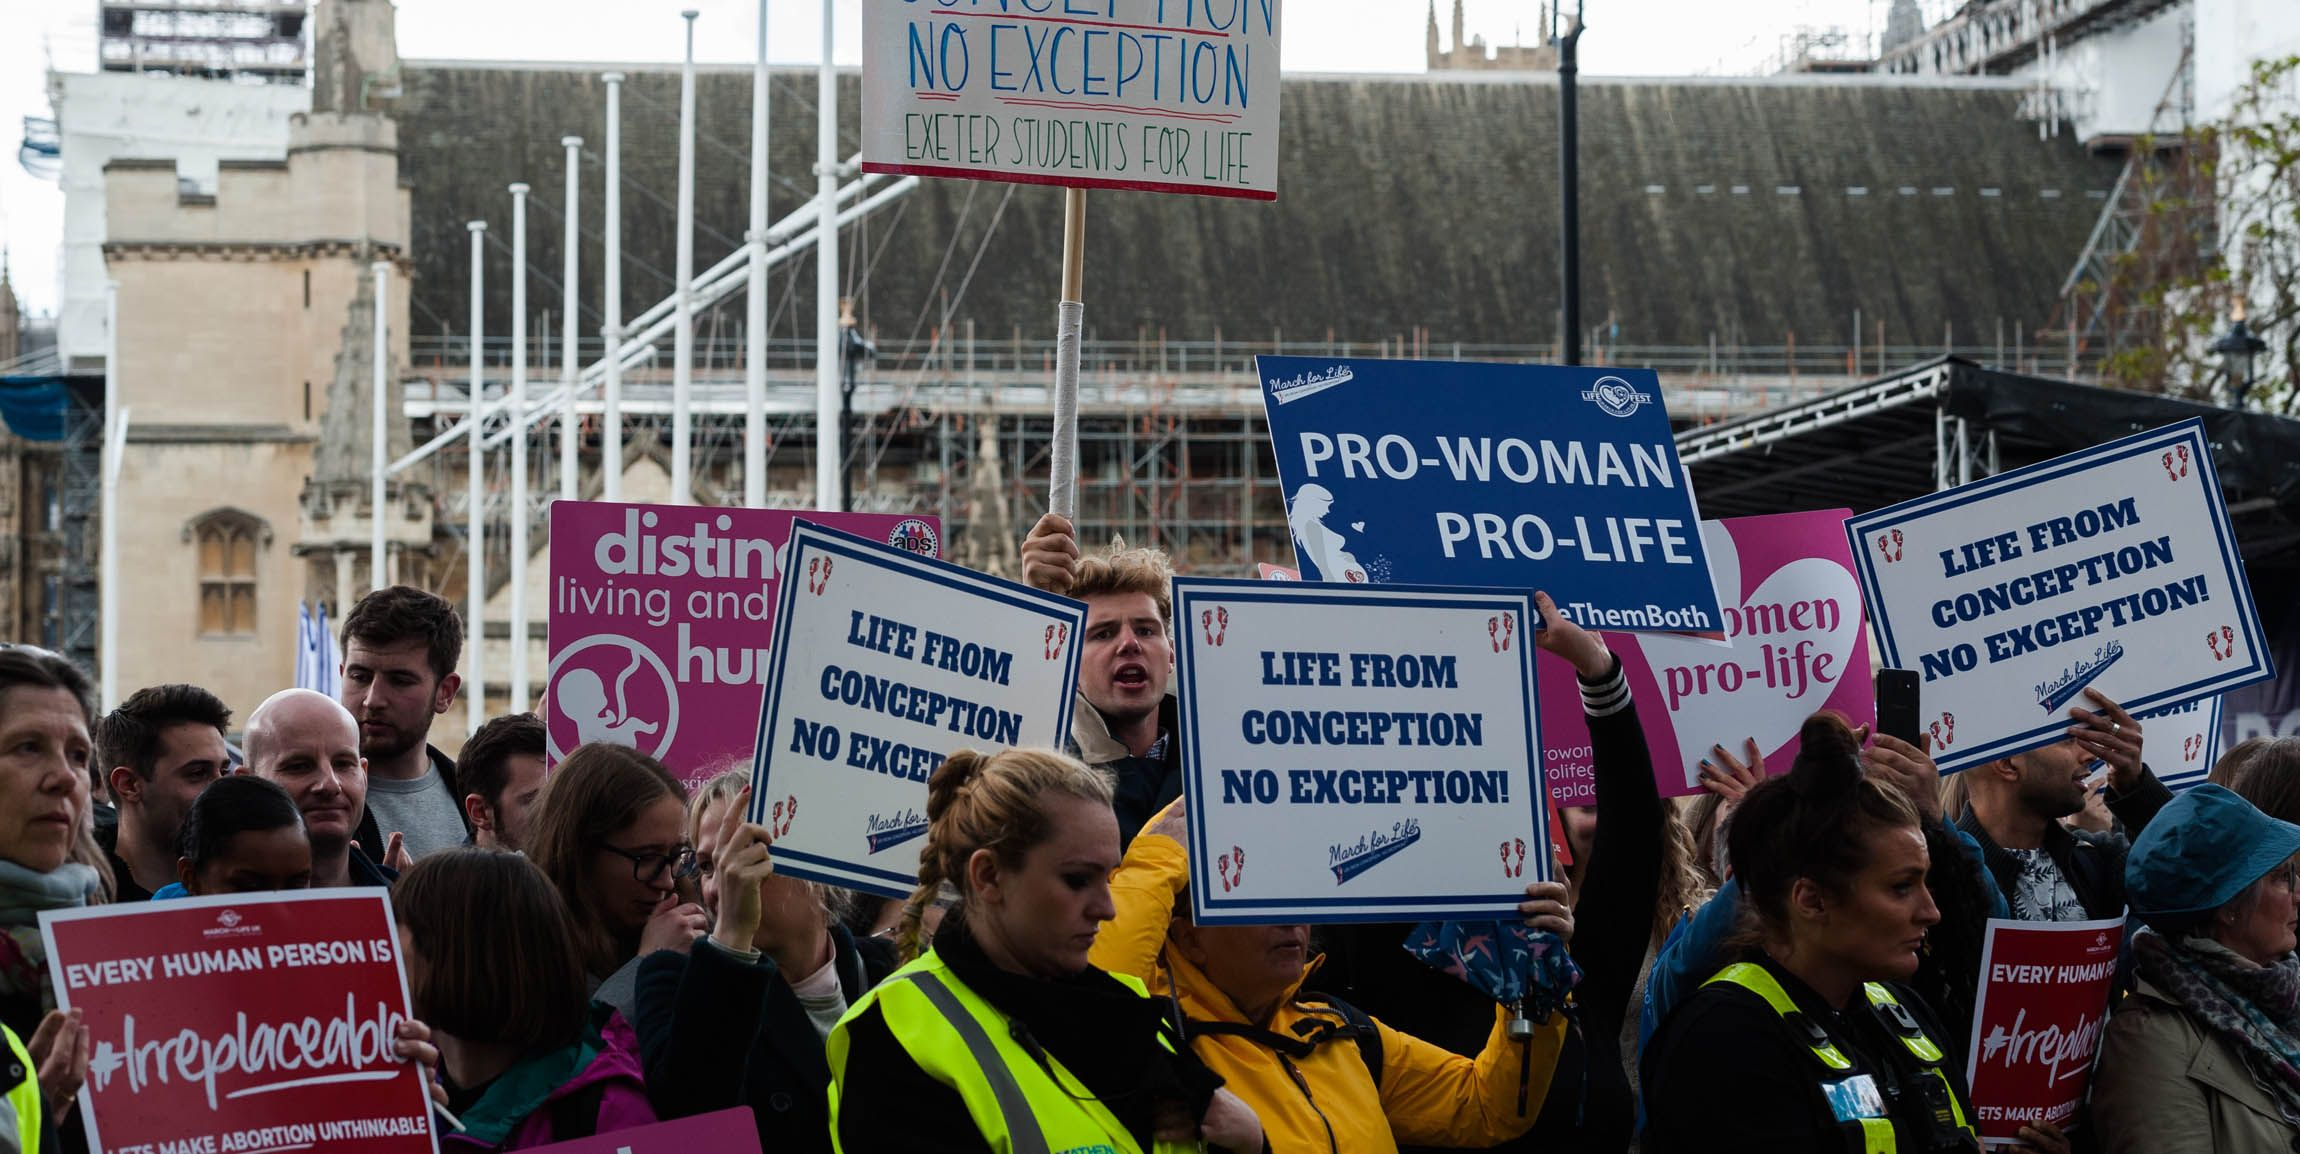 March For Life, London, UK - 11 May 2019